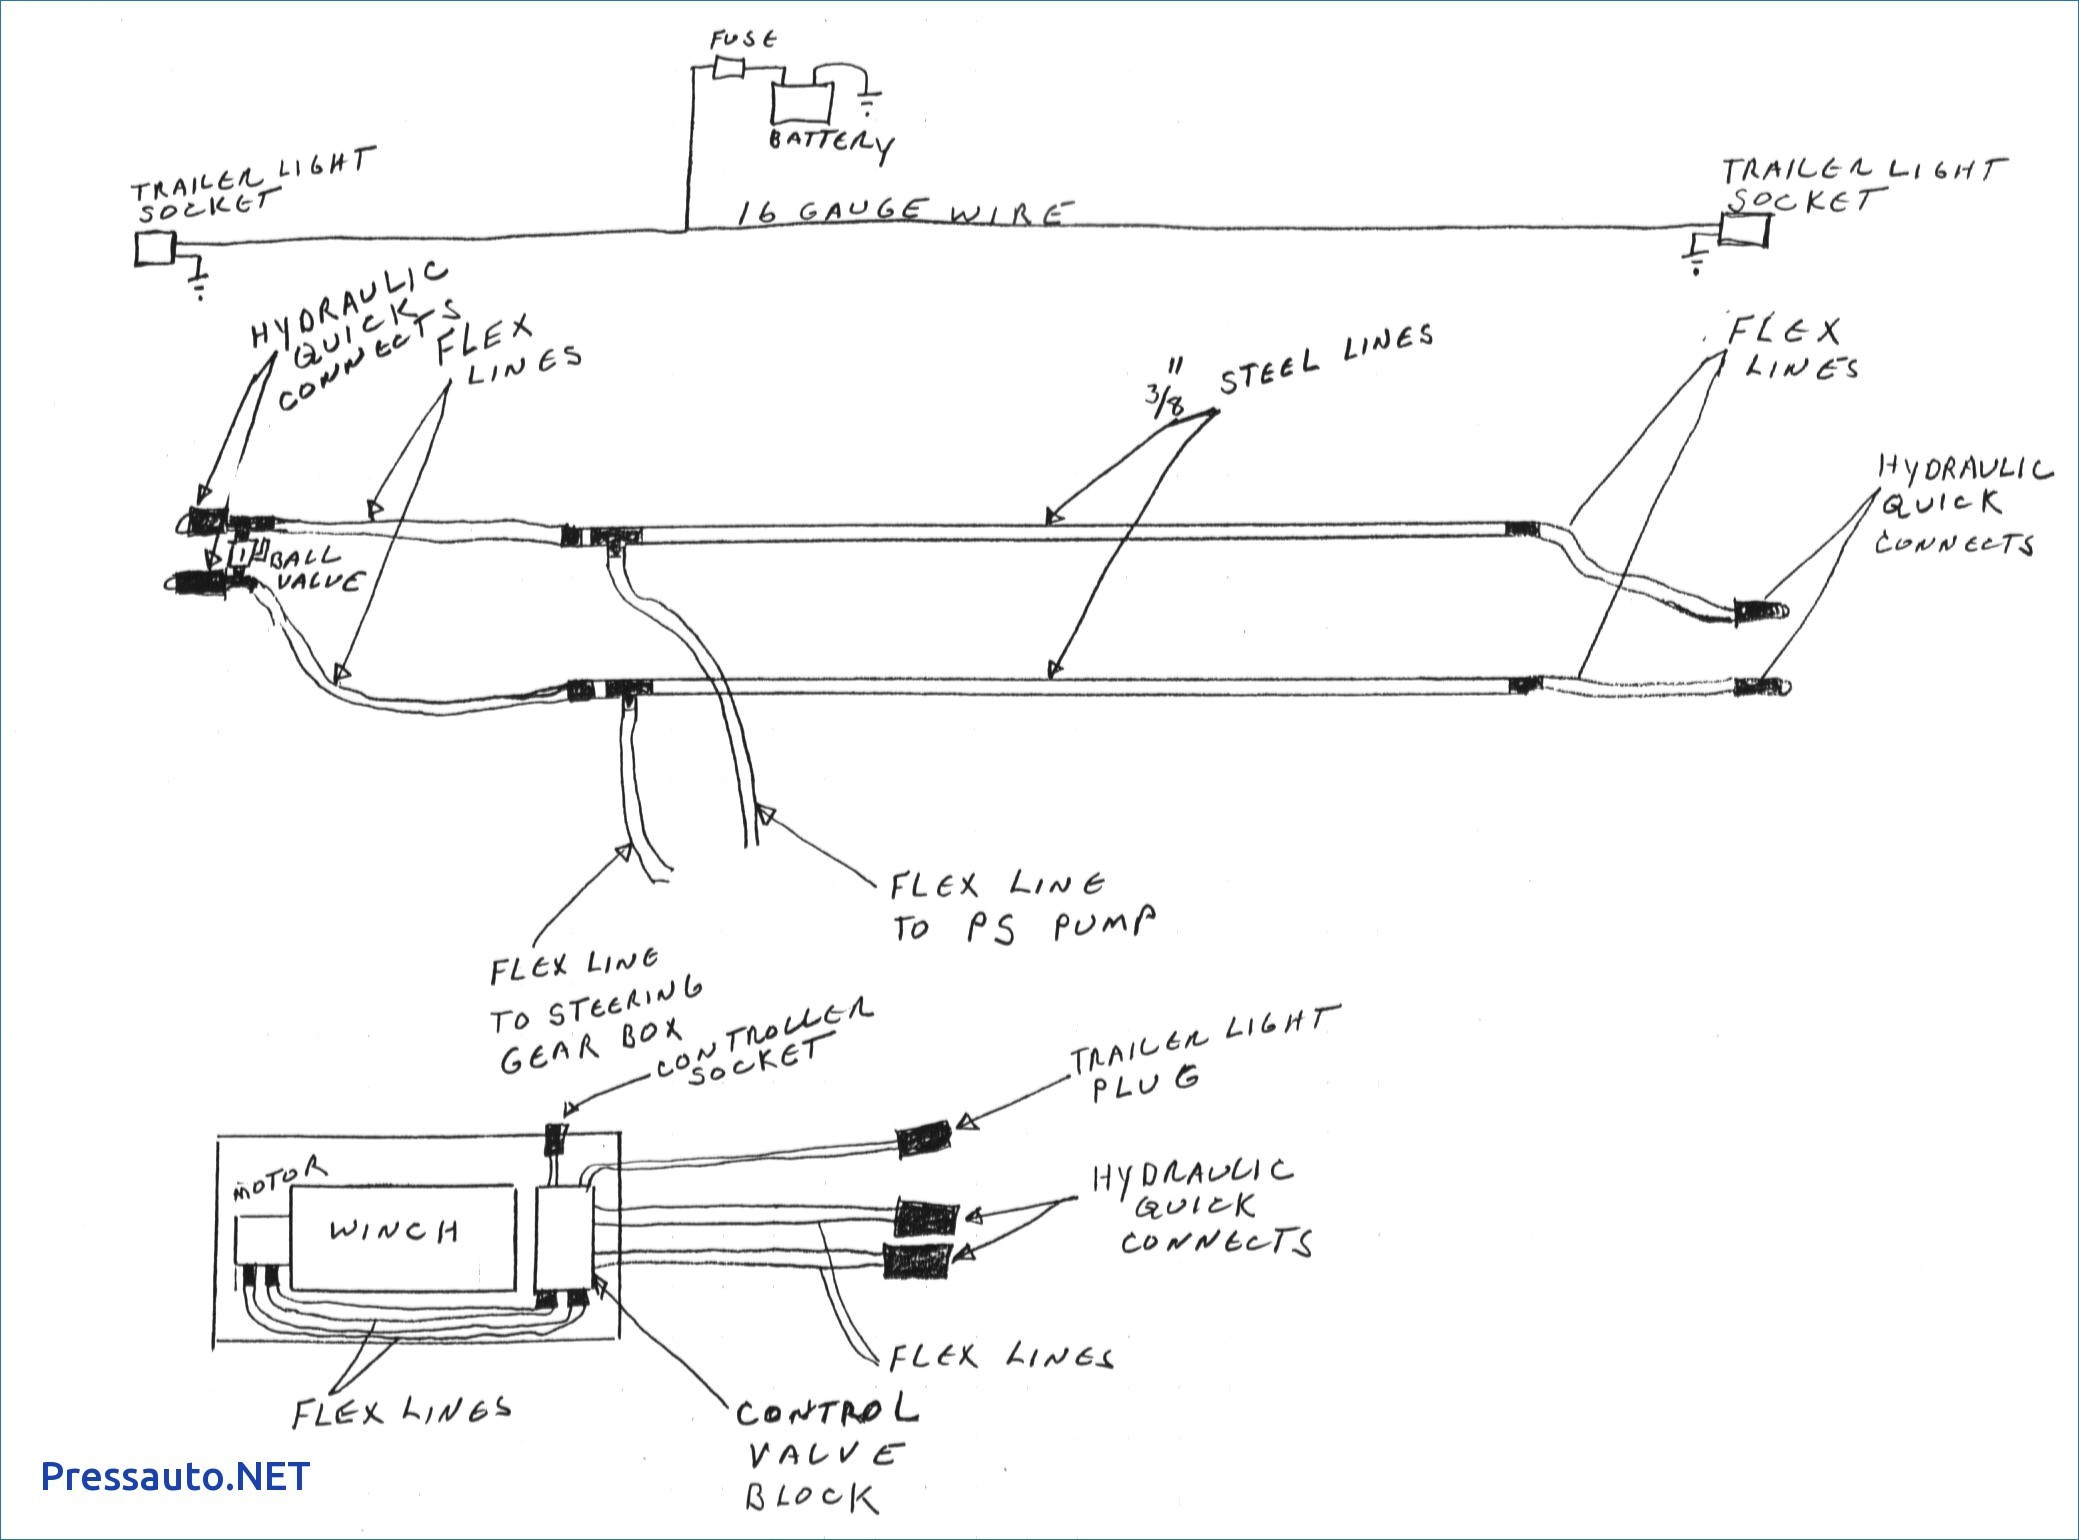 Winch Remote Control Wiring Diagram from mainetreasurechest.com